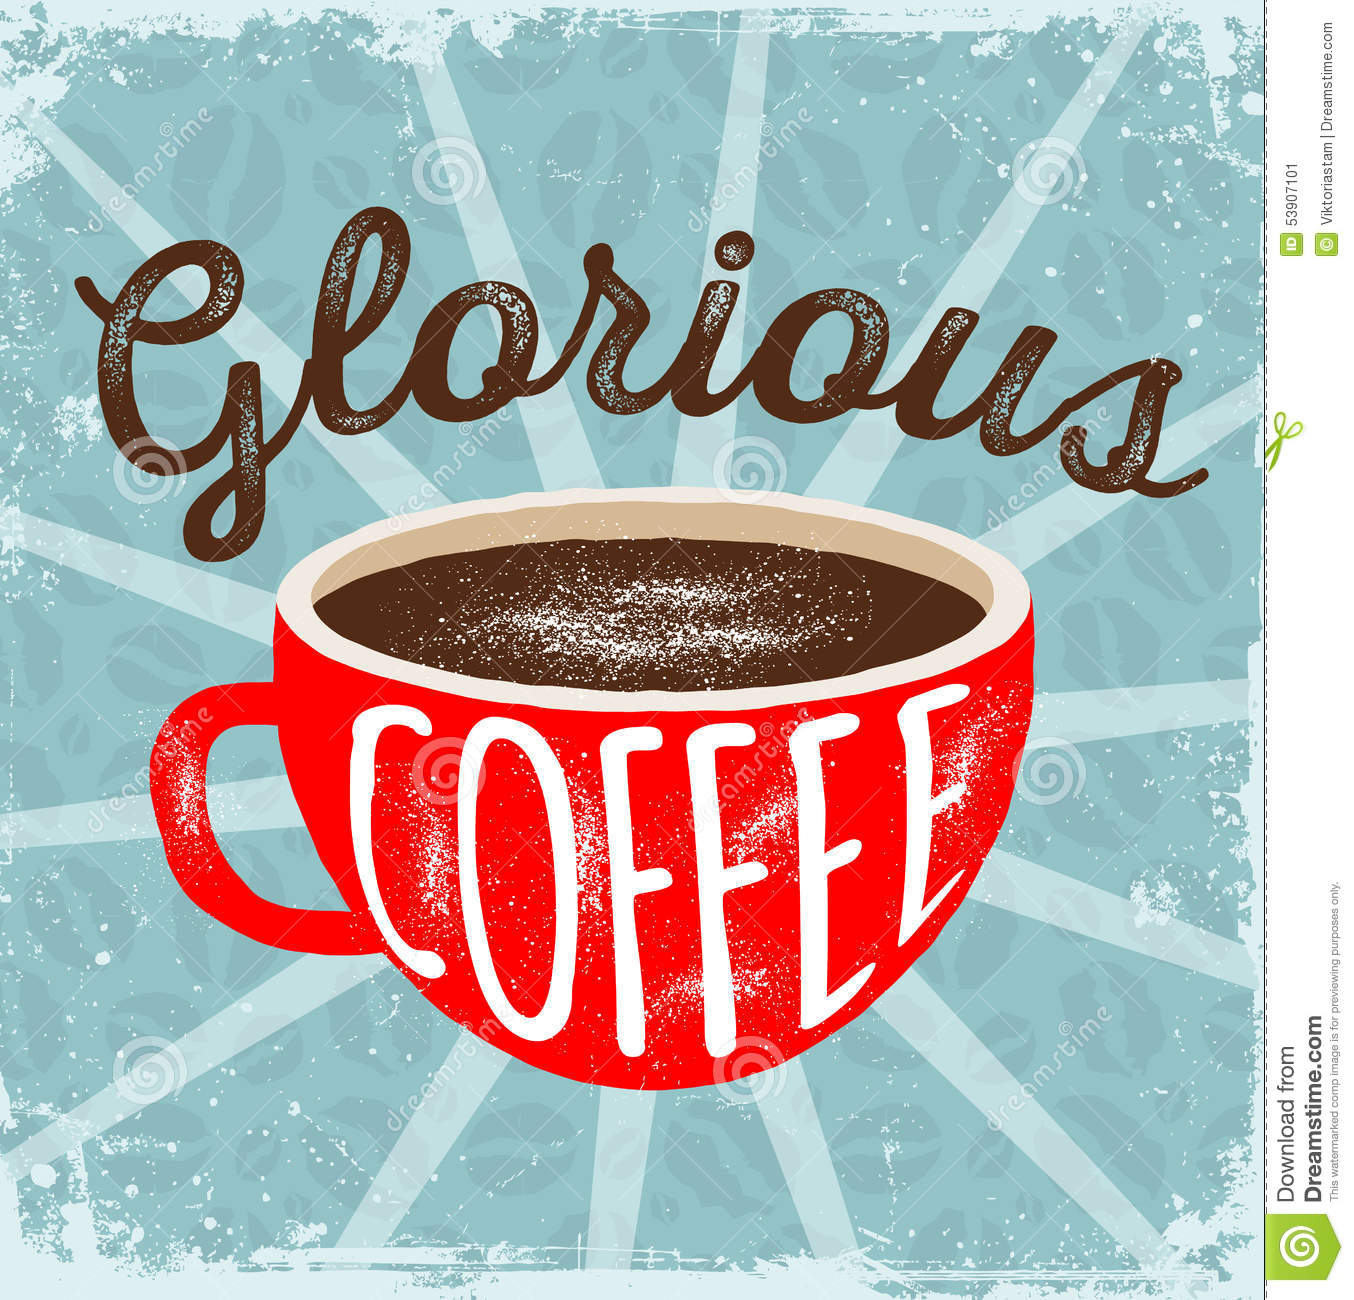 inspirational-vector-quote-glorious-coffee-poster-53907101.jpg